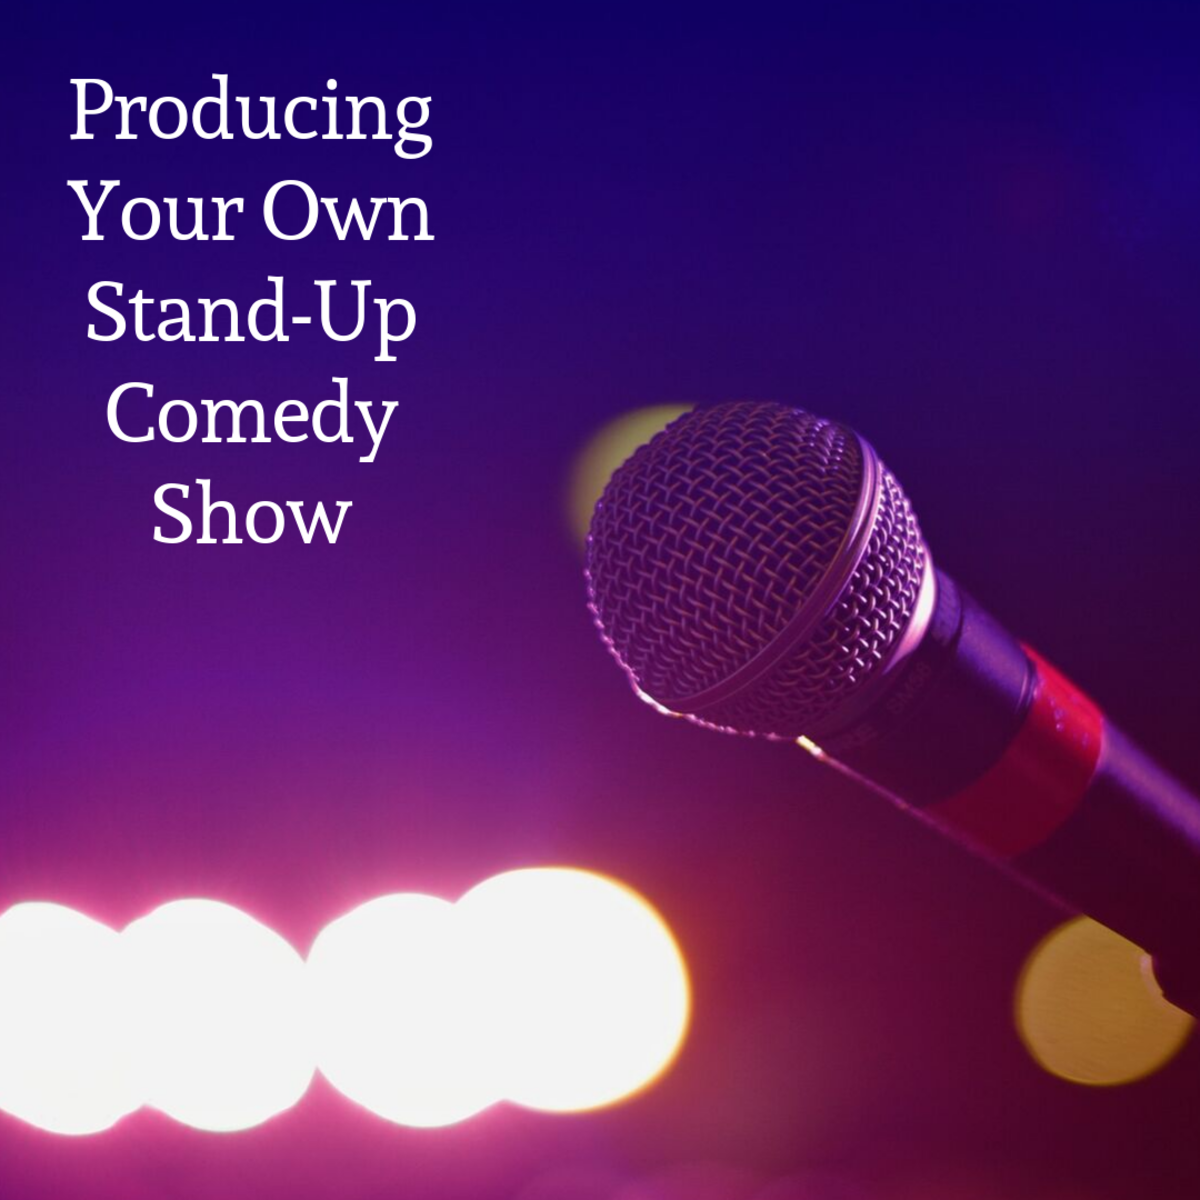 How to Produce Your Own Stand-Up Comedy Show